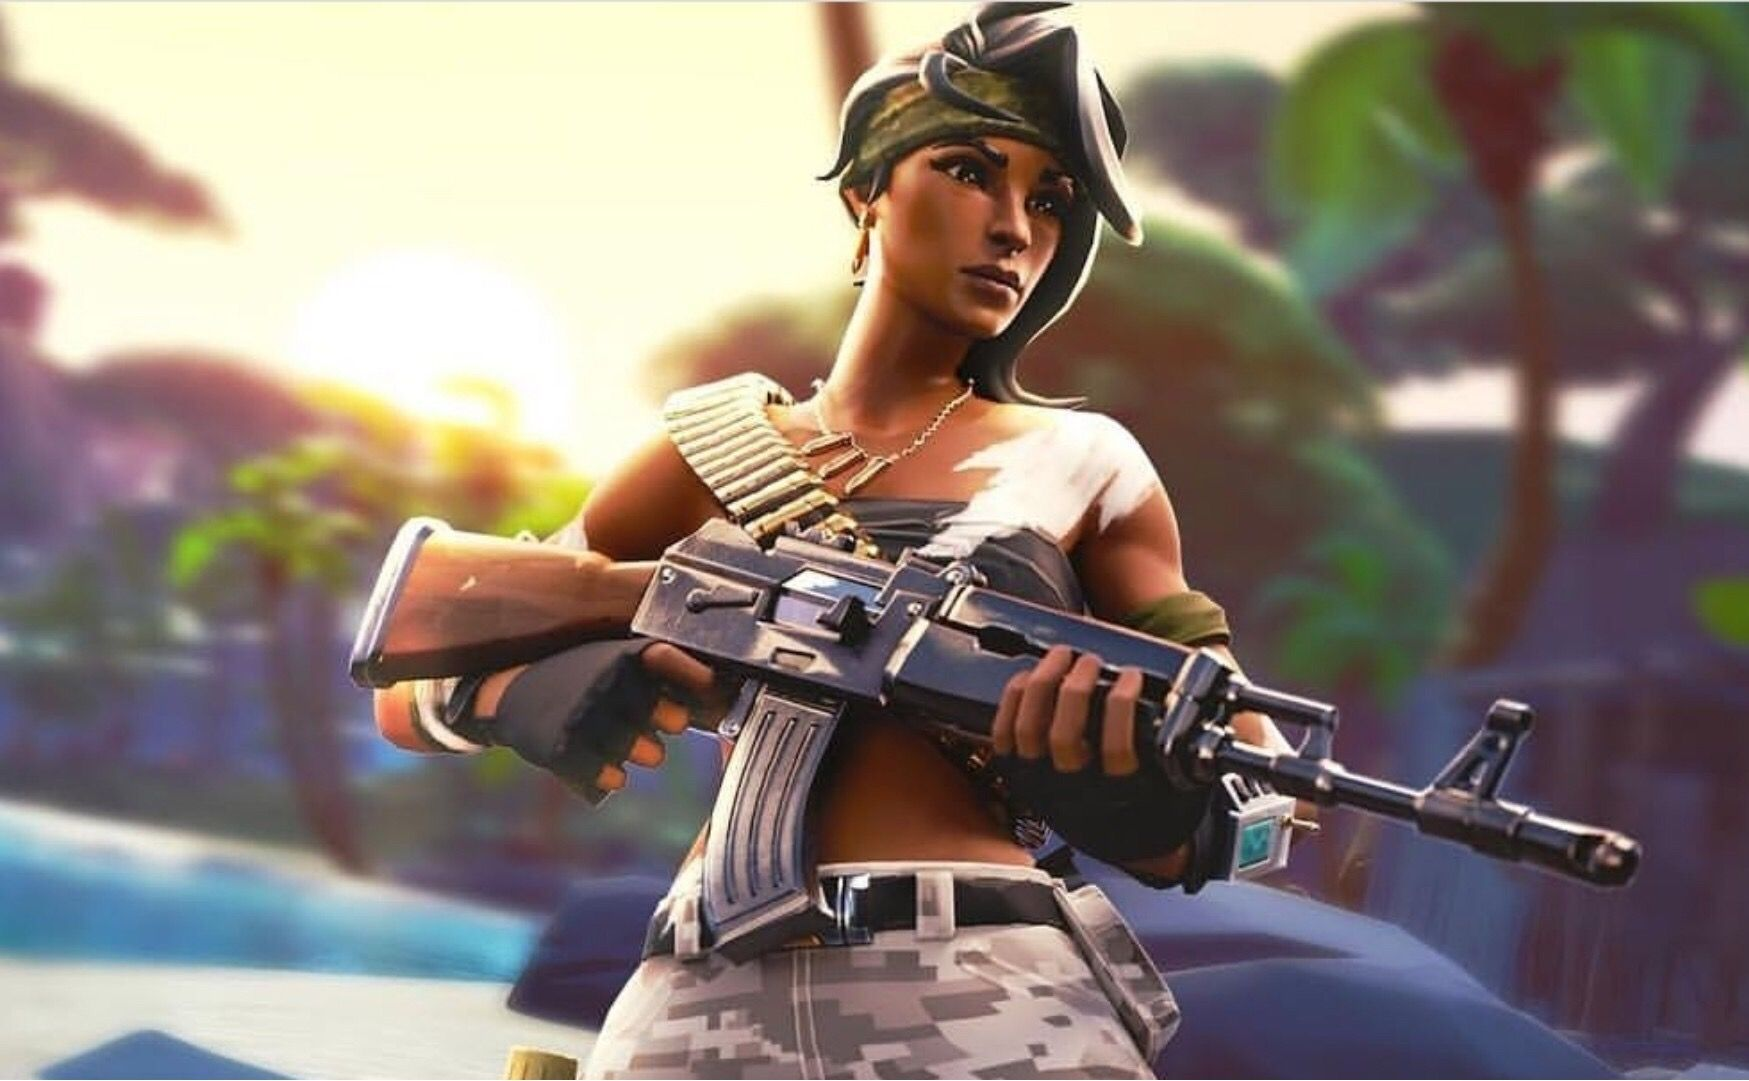 Freetoedit Fortnite Thumbnail Remixed From Fuzion Gfx Fortnite Battle Skins Memes Photo Gaming Wallpapers Epic Games Fortnite